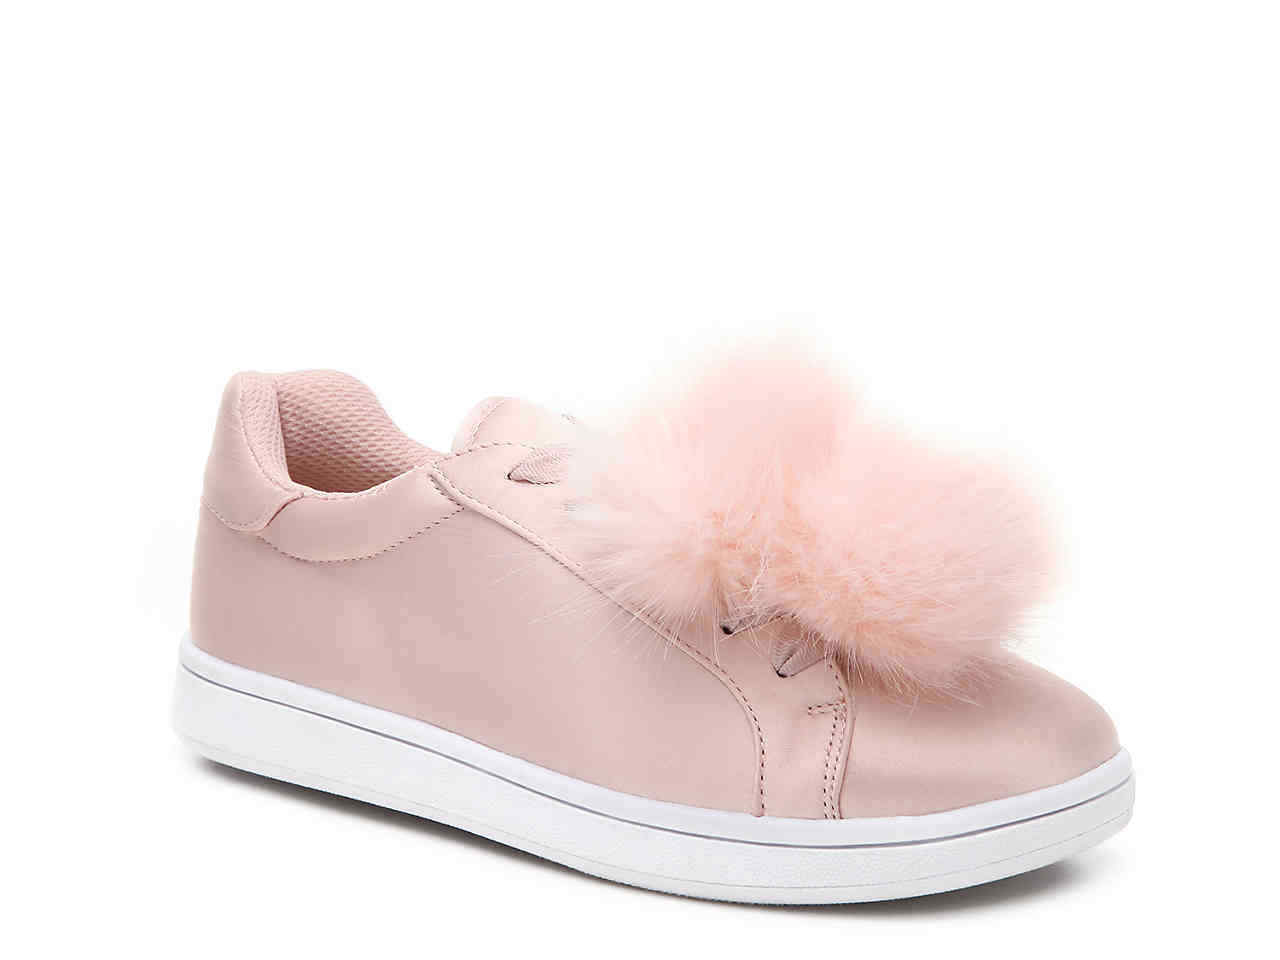 "Madden Girl Pink Satin Lace-Up Sneakers W Removable Pom-Pom Accents ""BRIITNYY"""